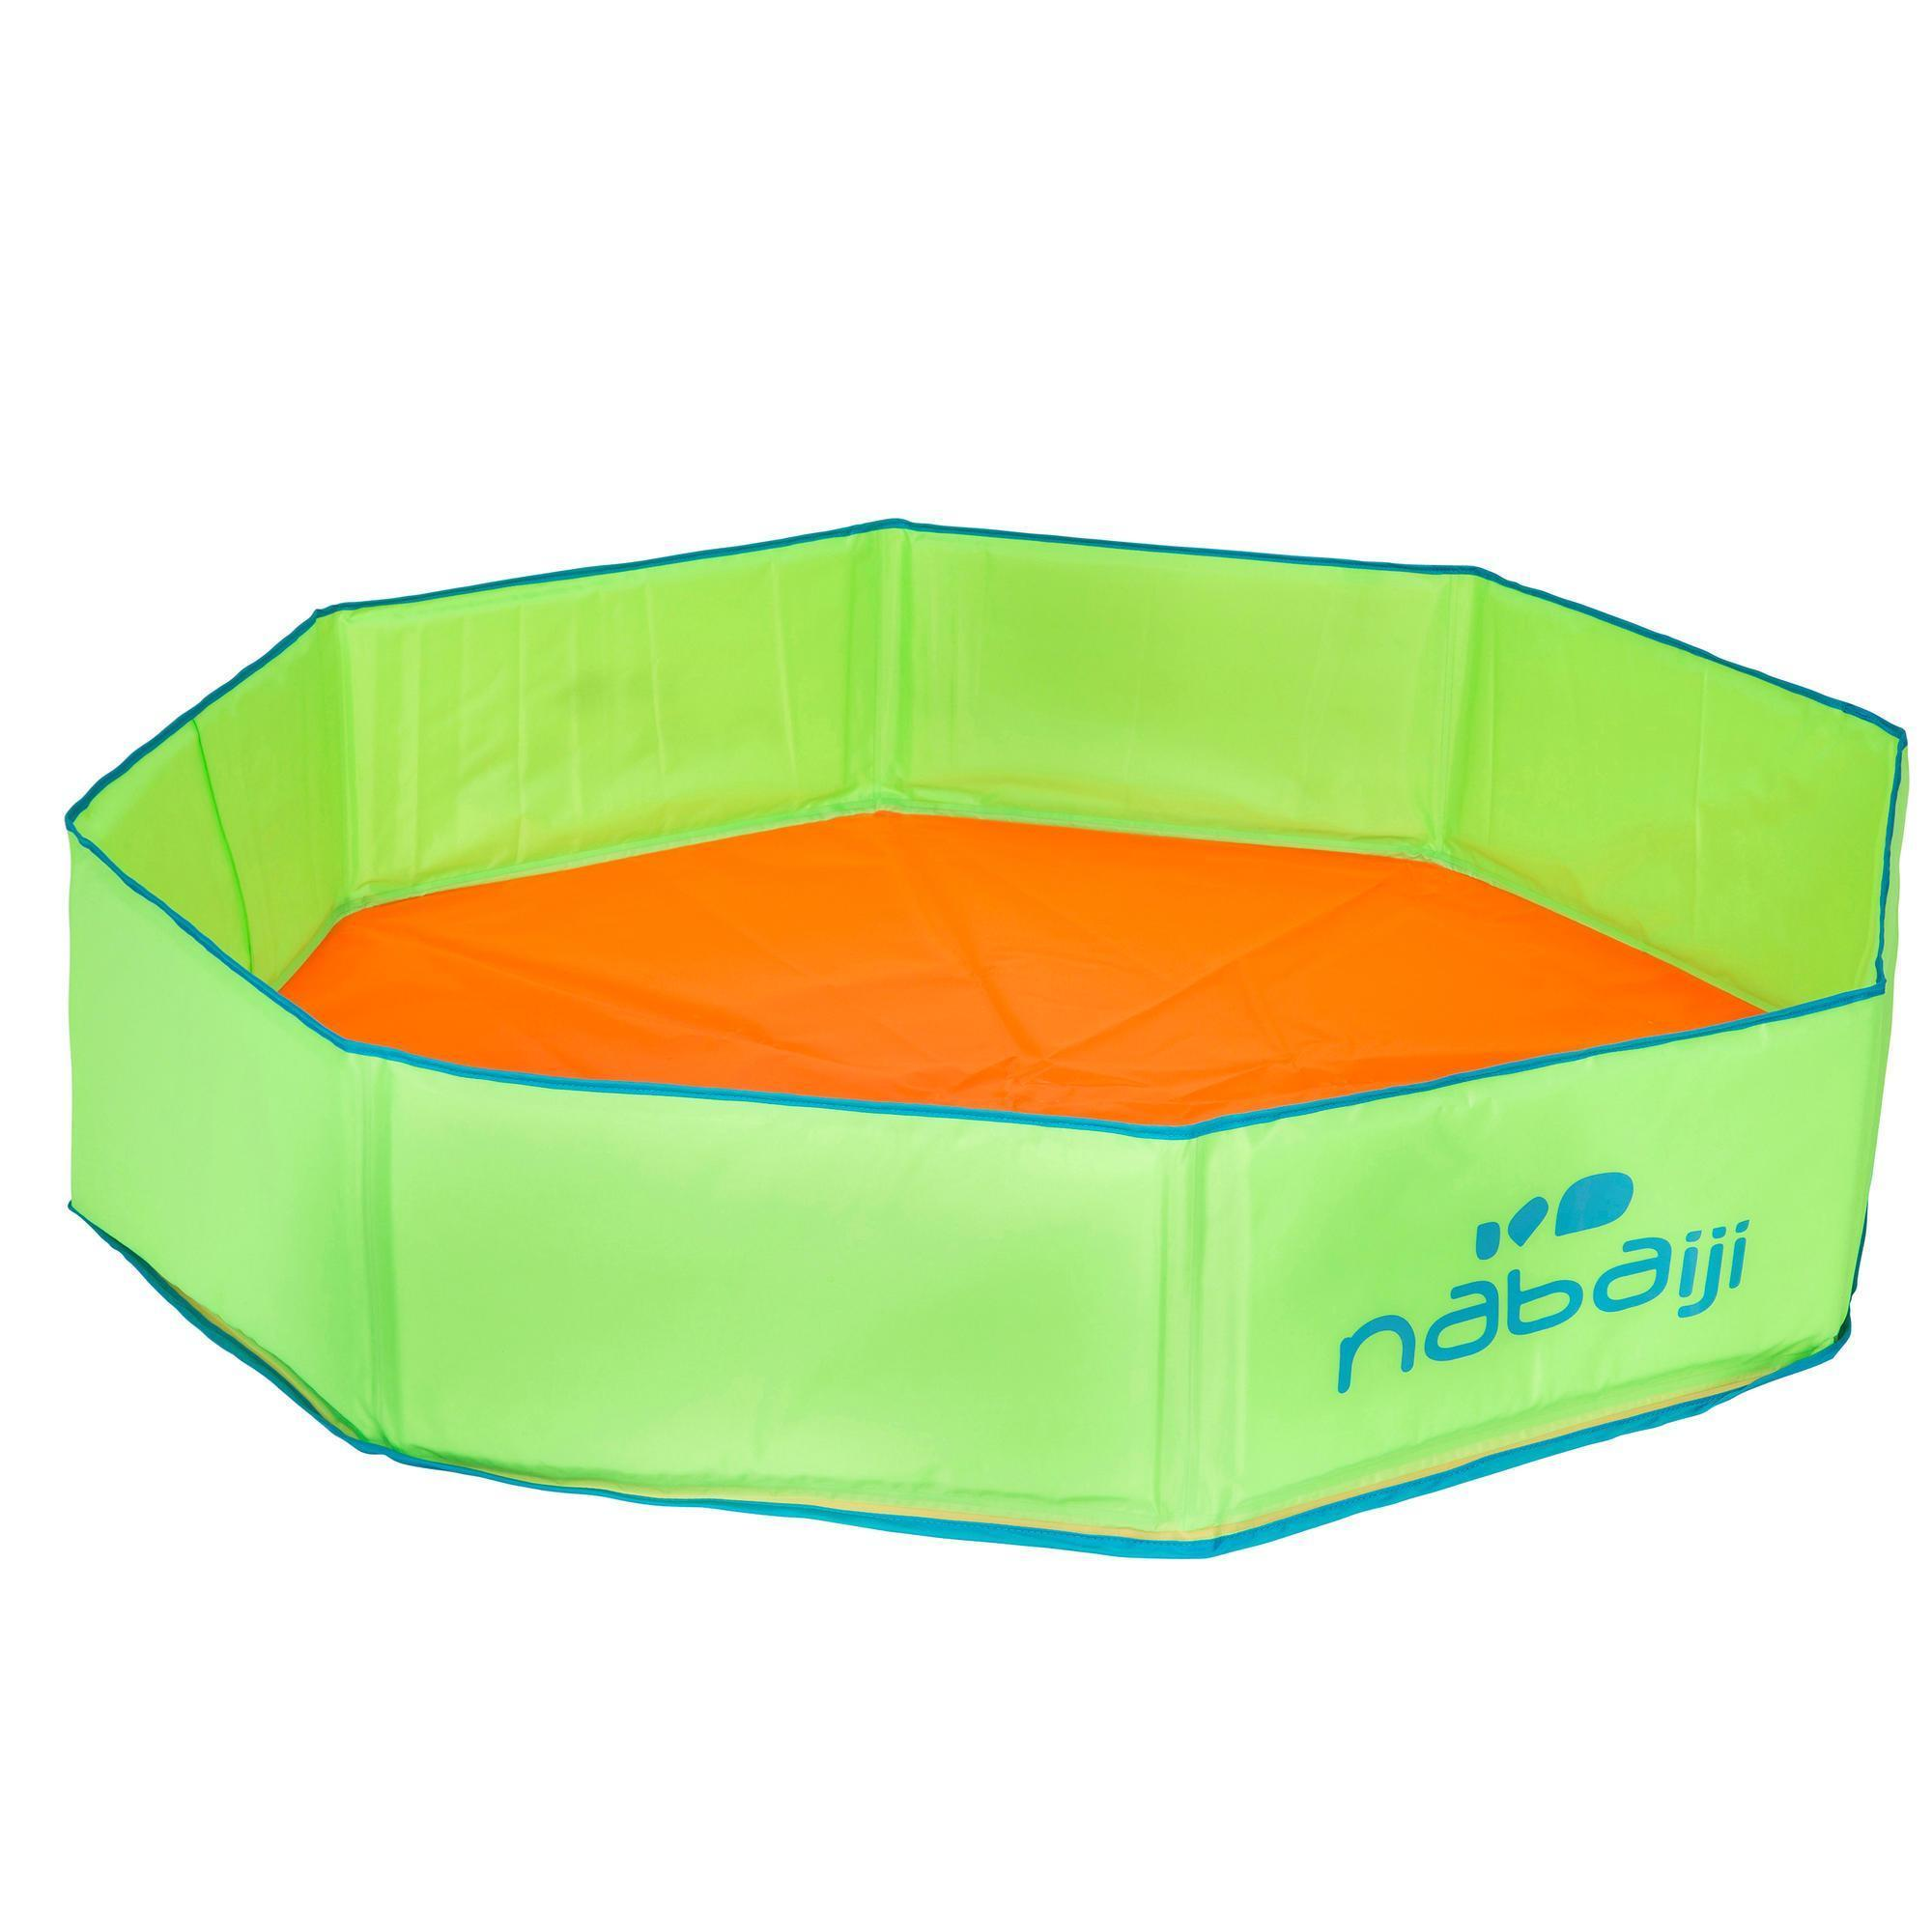 Piscina Decathlon Tidipool 43 Paddling Pool With Carry Bag Green And Orange